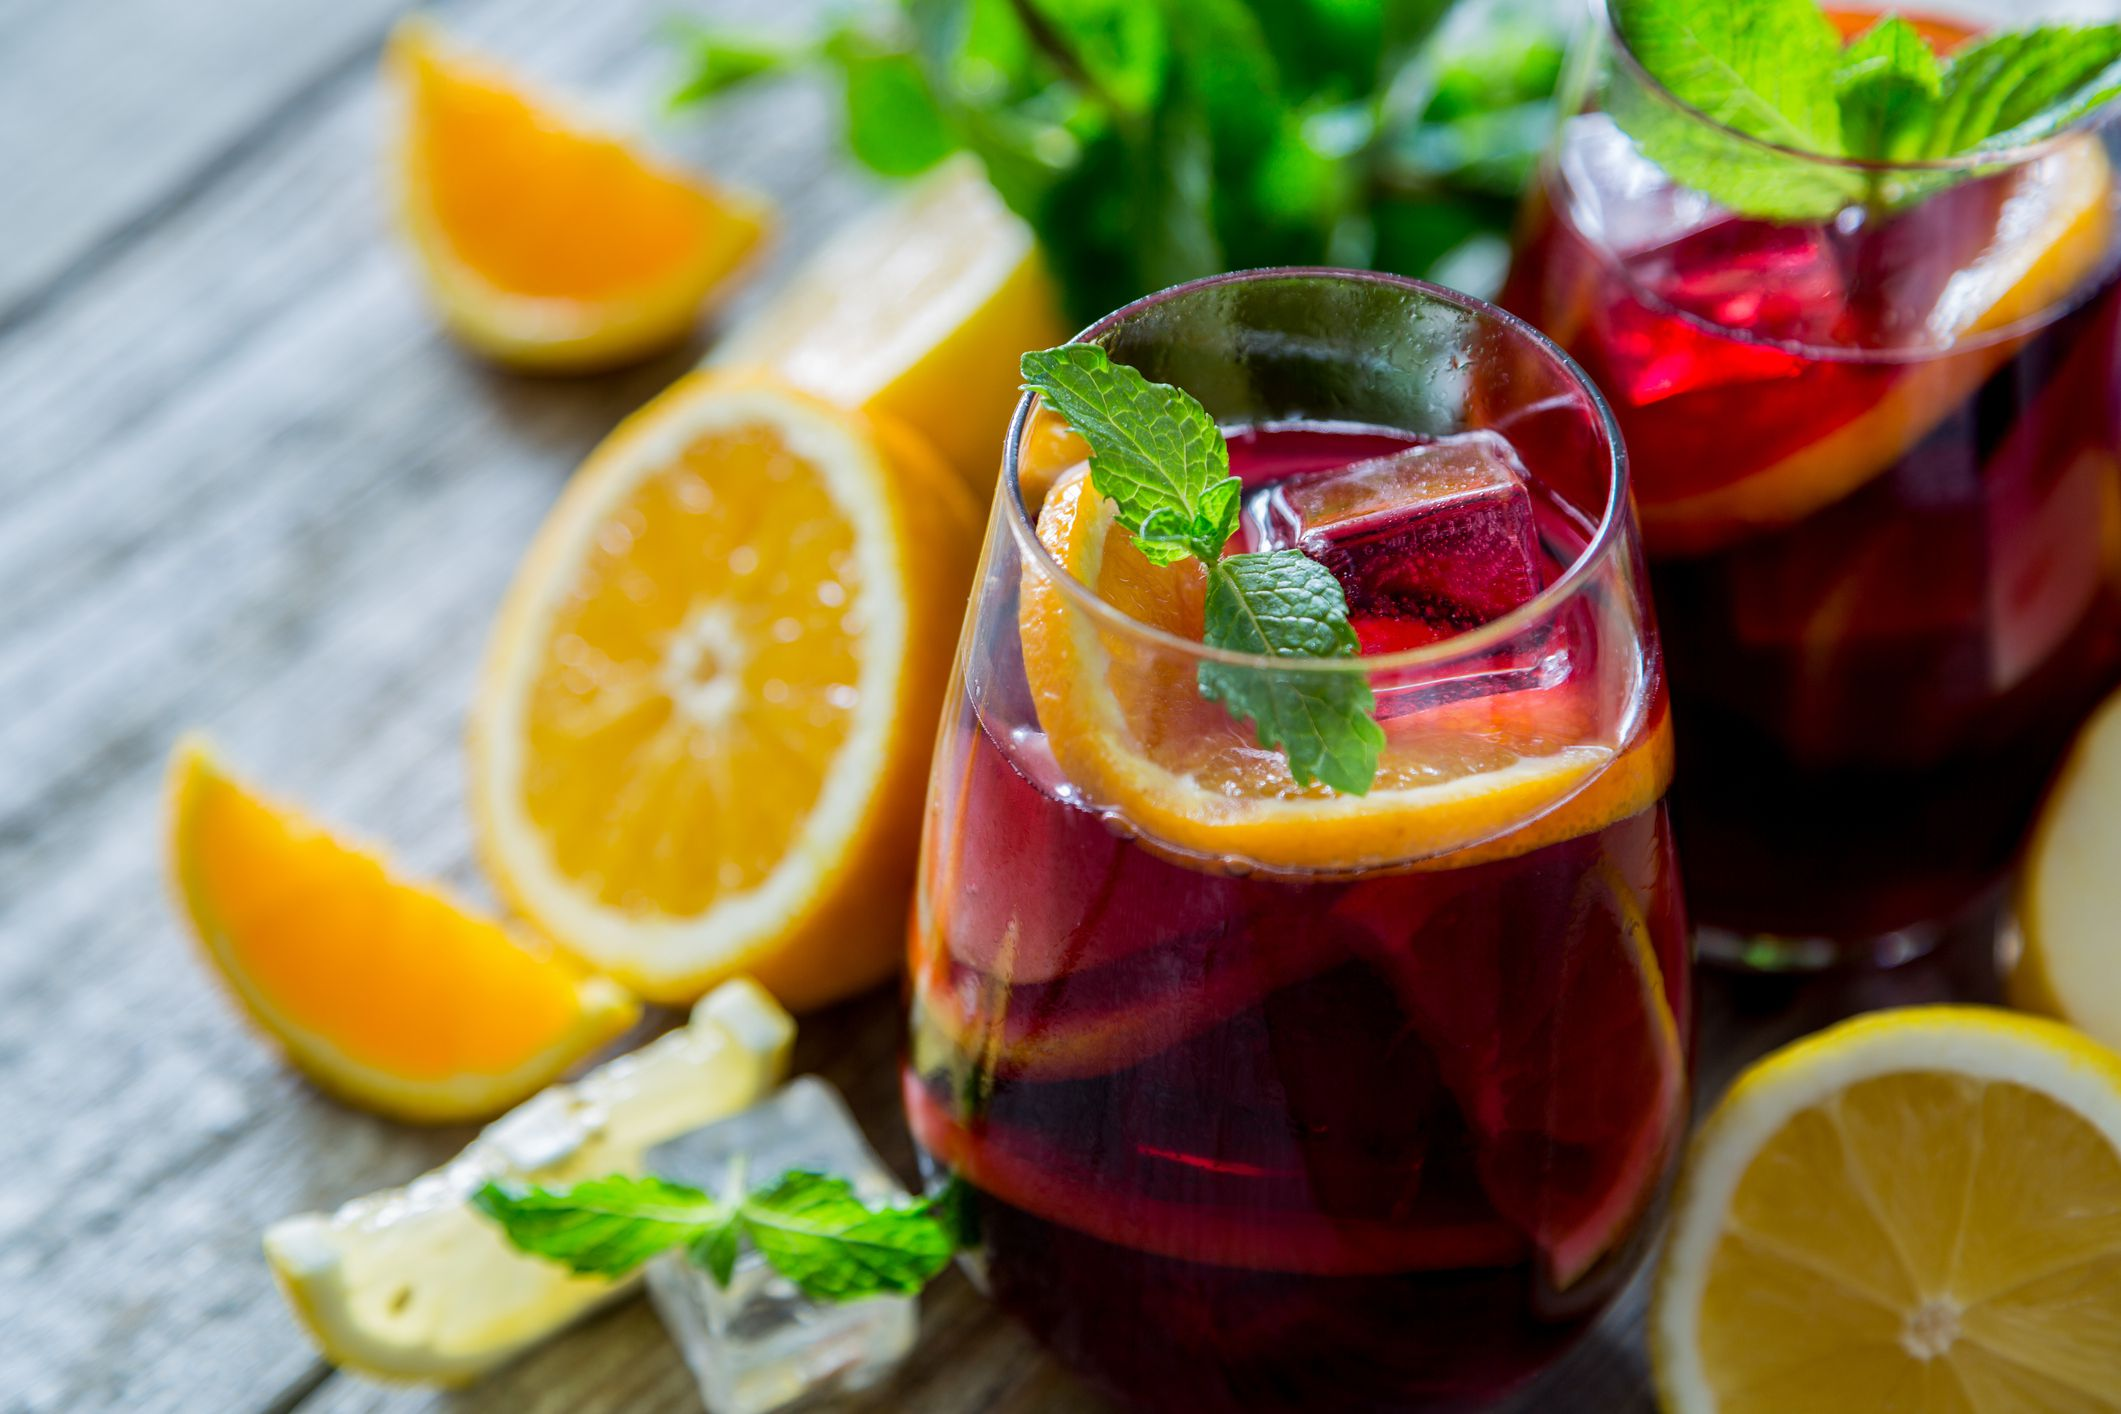 Celebrate Summer with Sangria!